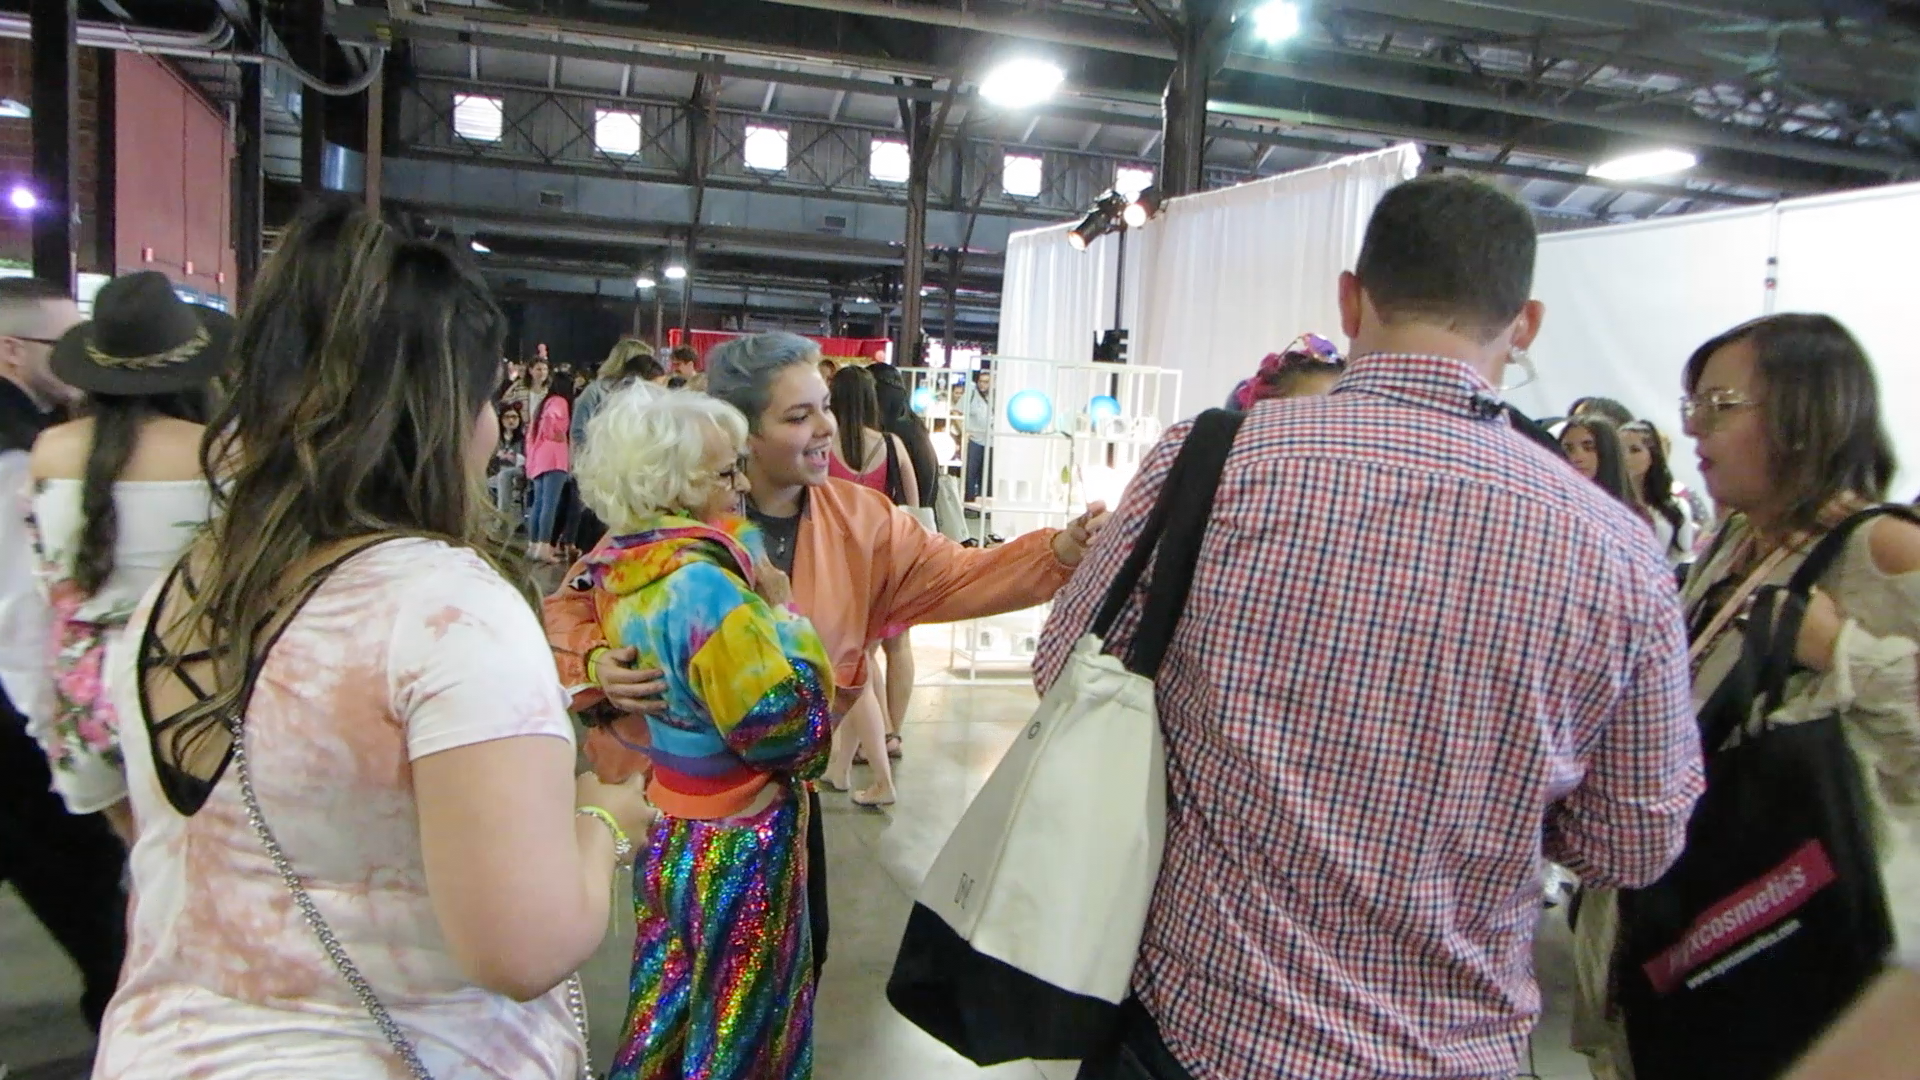 Baddie Winkle interacting with her fans at Beauty Con Dallas. Photo by Itza Sanchez.